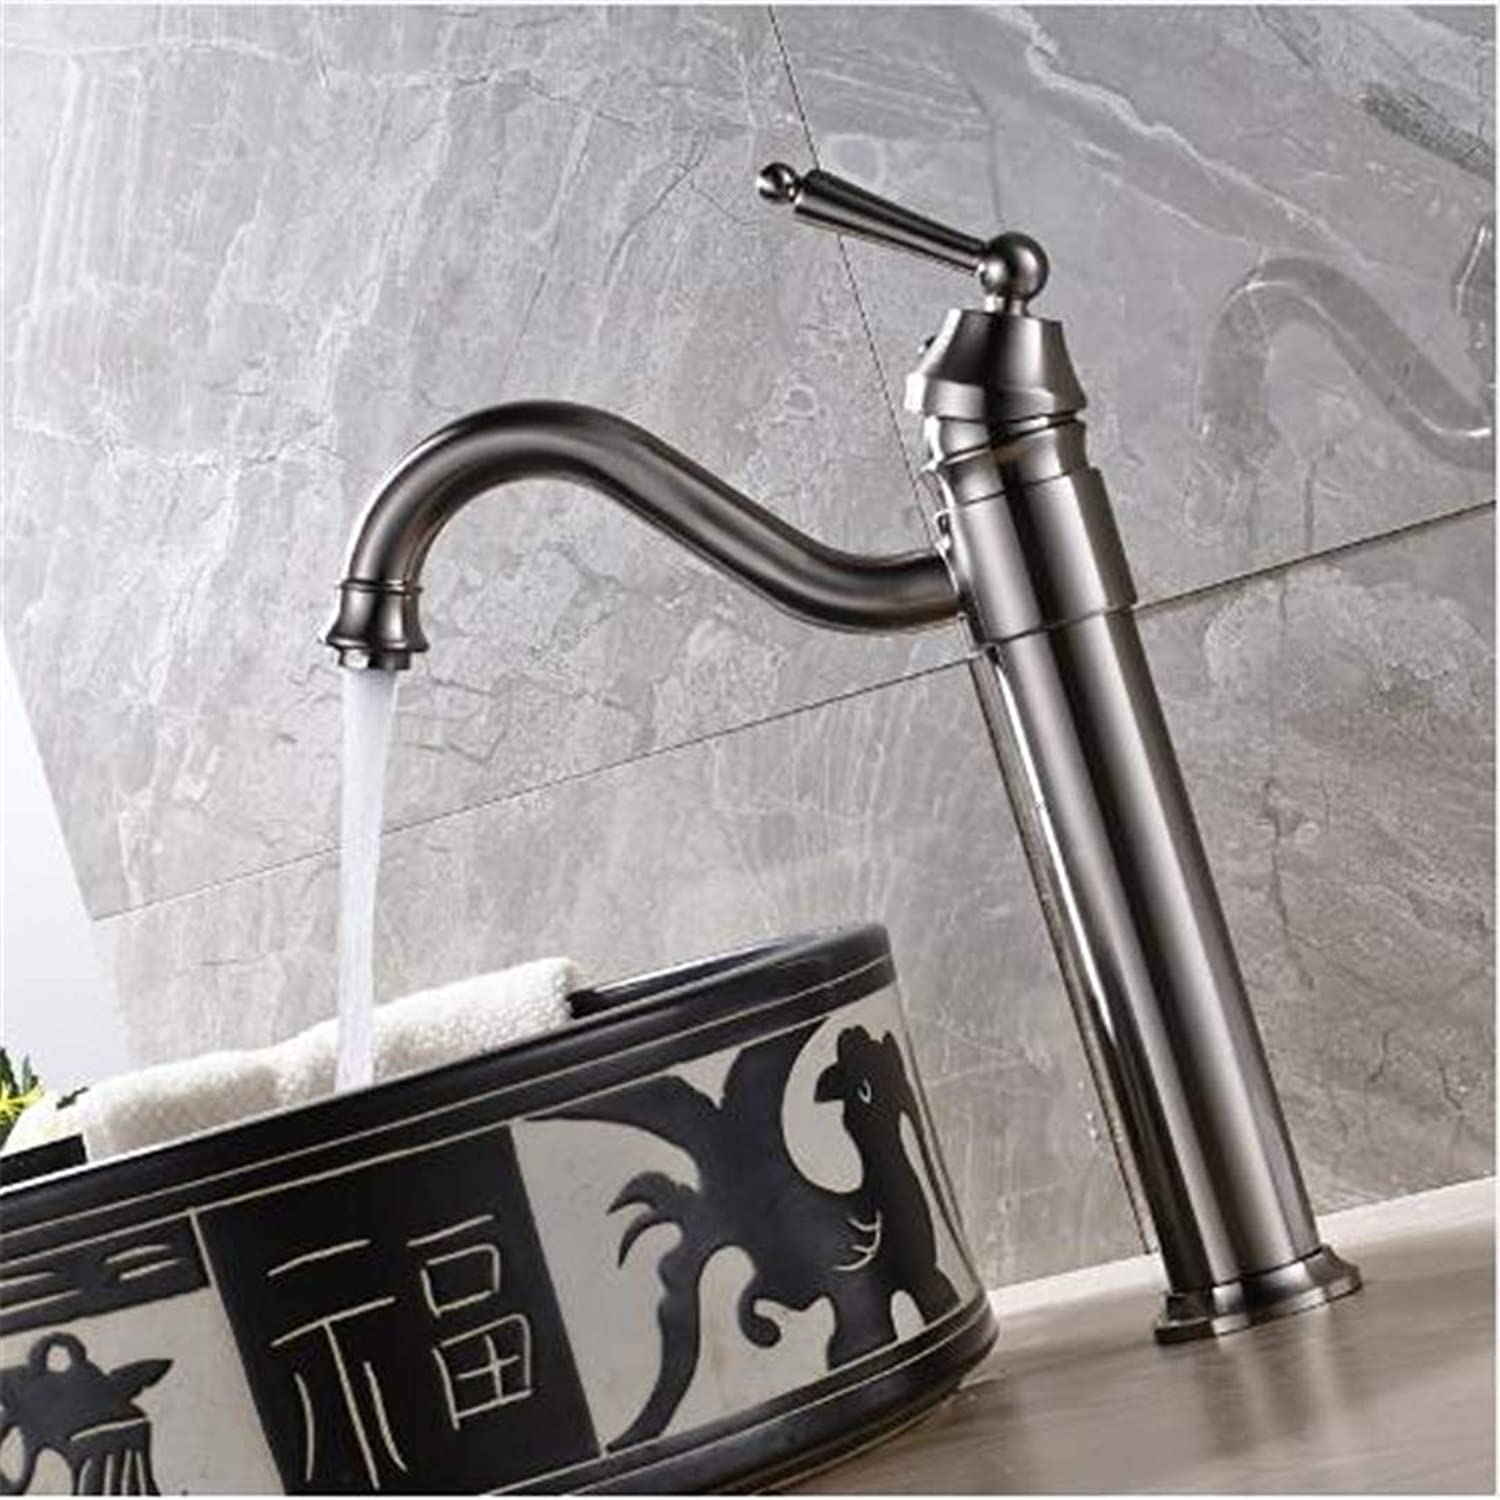 Bathroom Basin Faucet Kitchen Faucet Hot and Cold Taps Crossnickel Brushed Bathroom Sink Faucet Single Handle Vessel Mixer Tap Solid Brass Countertop Crane